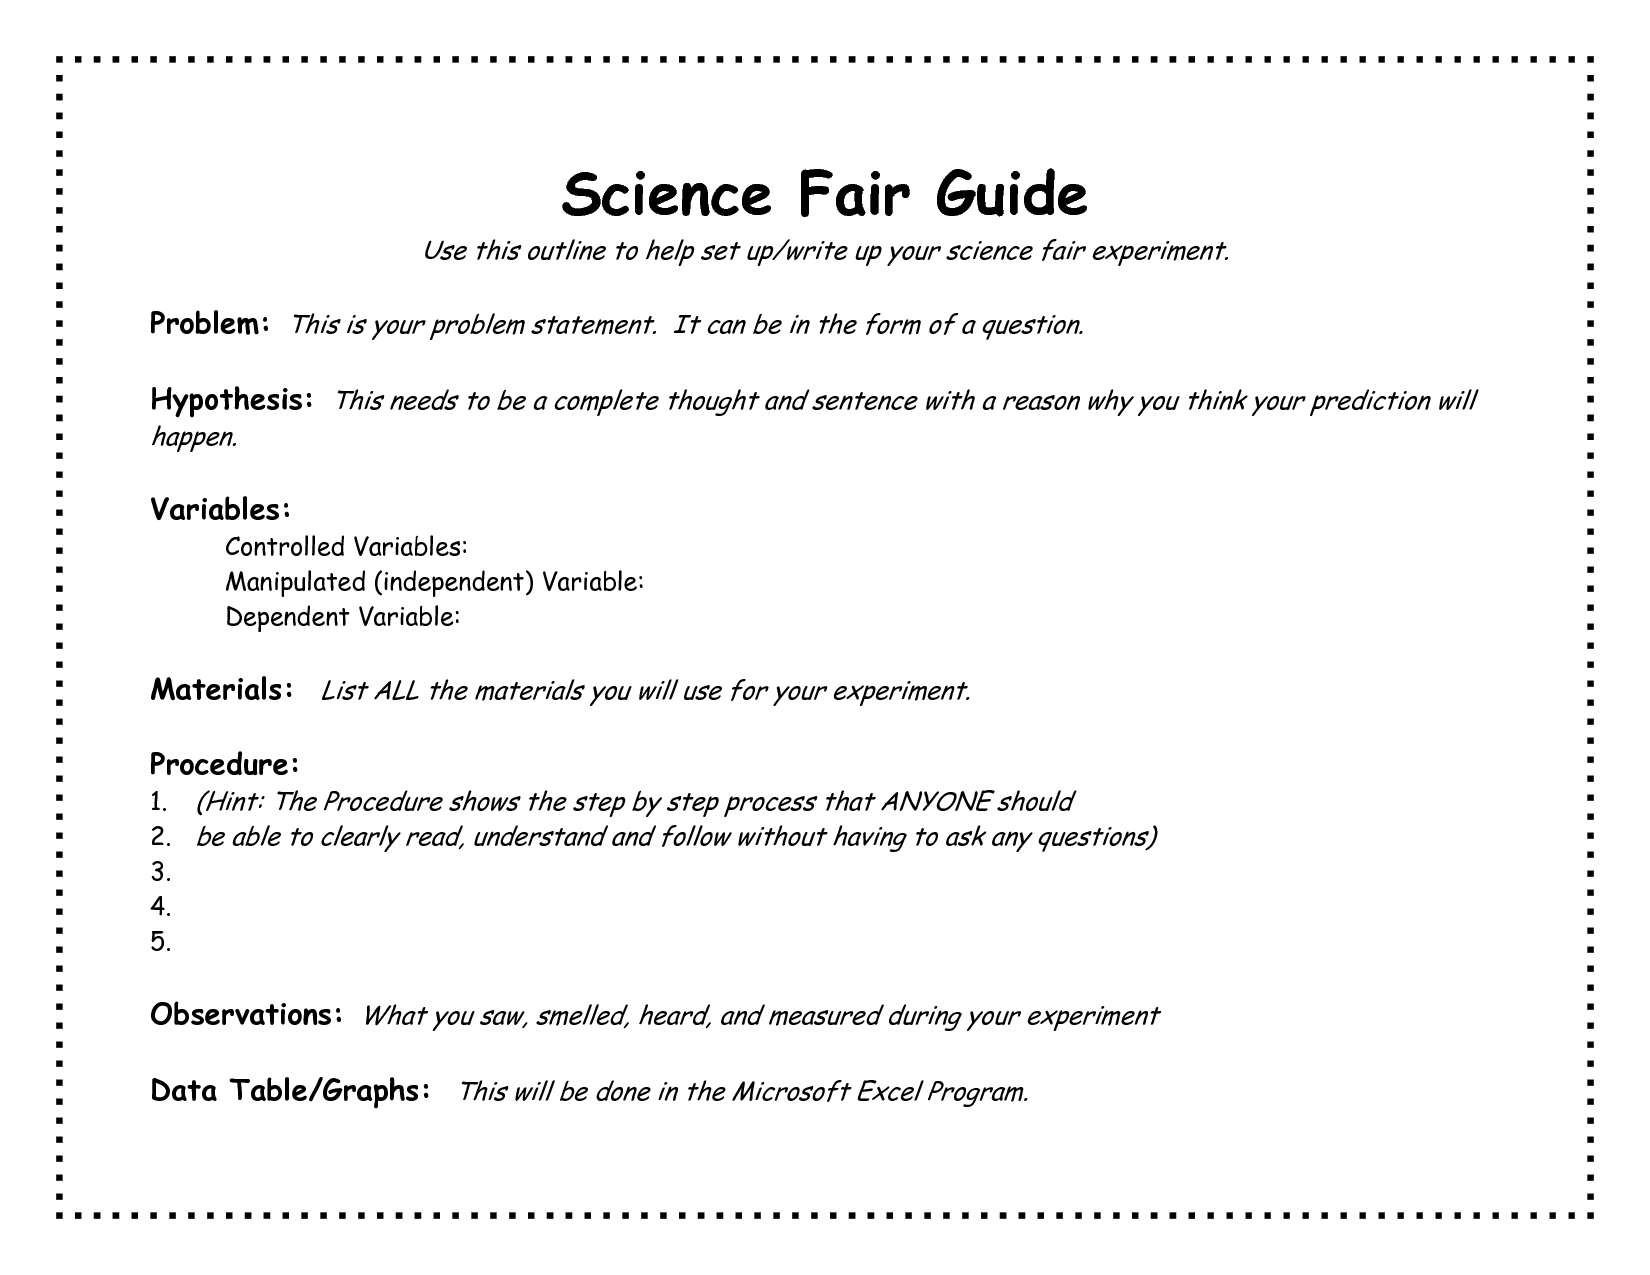 006 Research Paper Help With Science Fair Papers Middle School Frightening Template Full